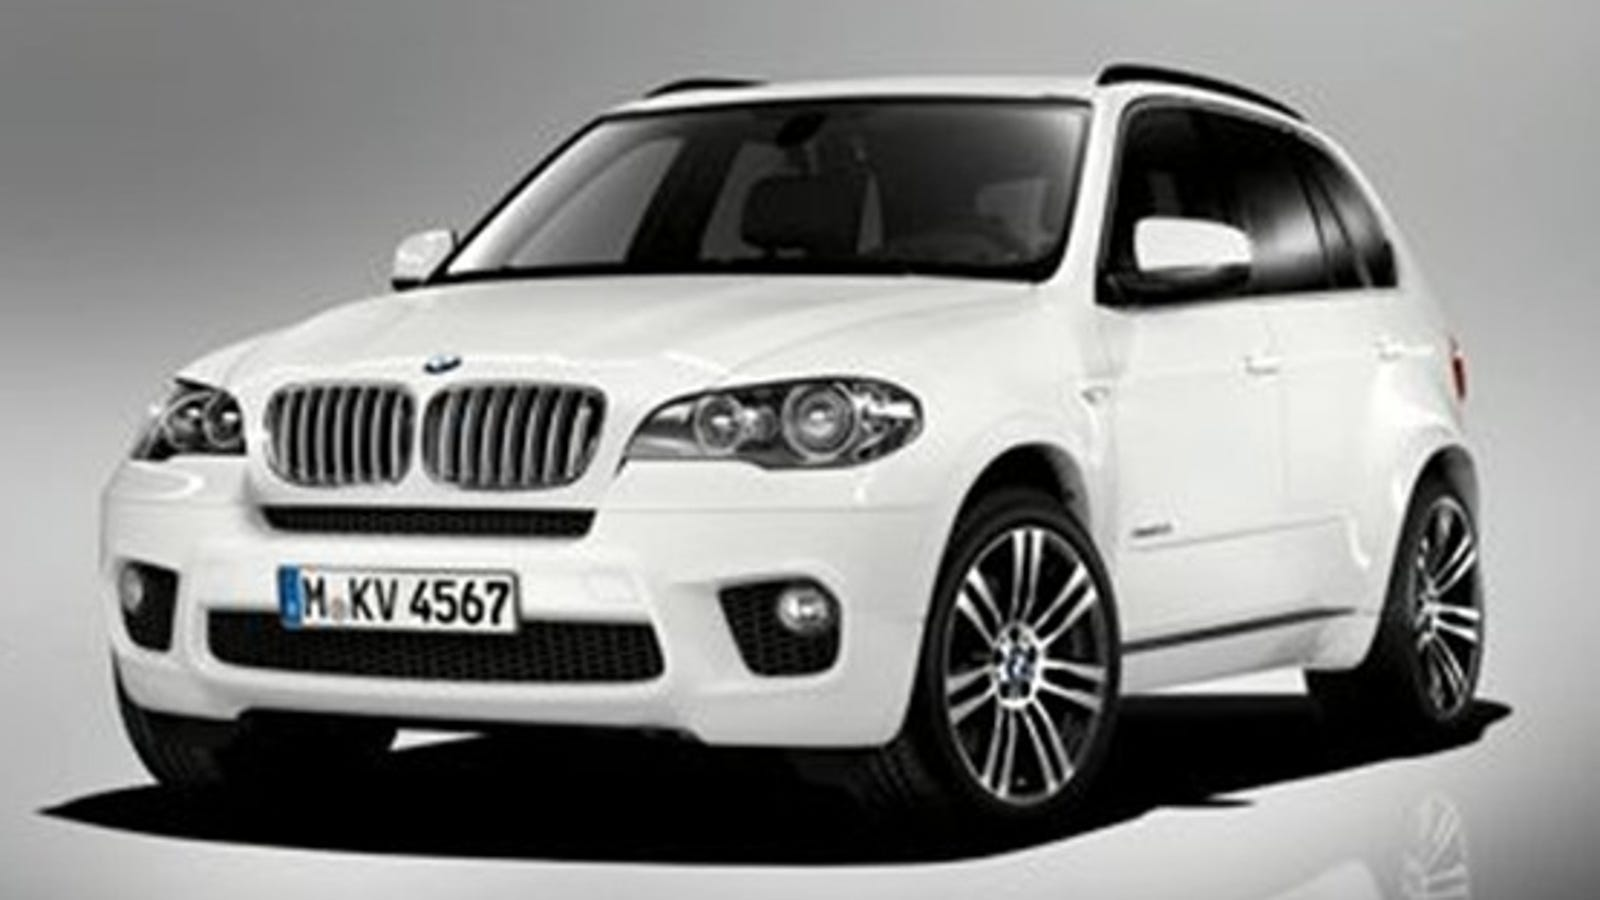 An Honest Review Of The 2013 BMW X5 XDrive35i M Sport Packageyea Sure